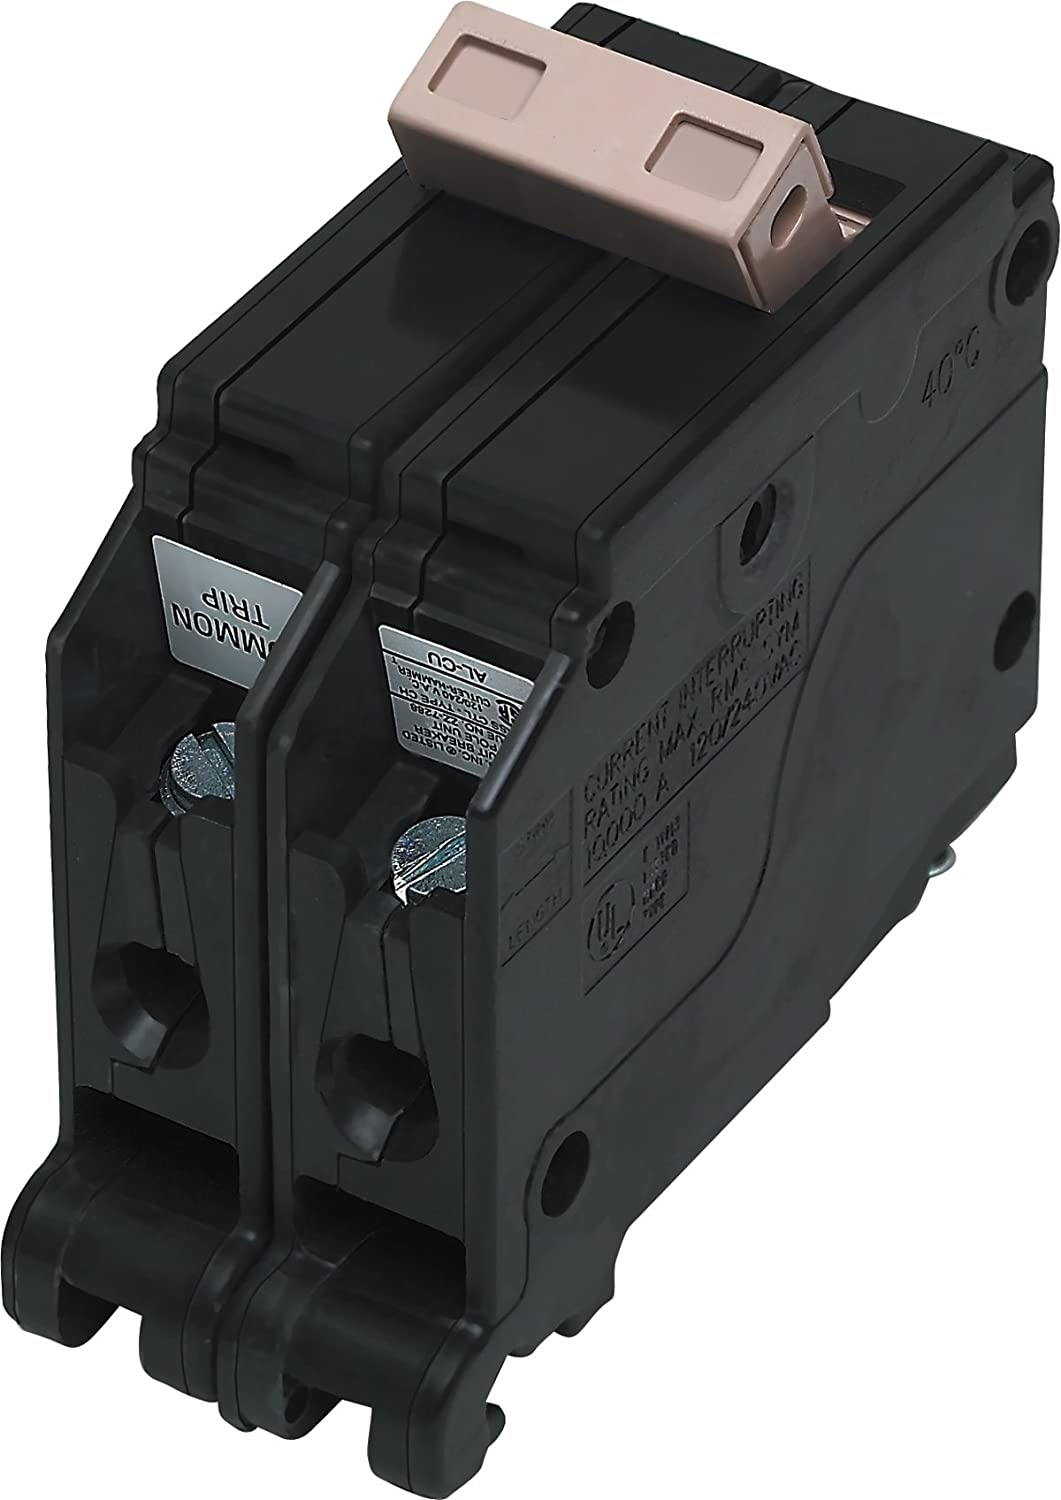 Cutler Hammer Ch230 2 Pole 30 Amp Circuit Breaker Trip Of A Your Electrical Home Together With Panels